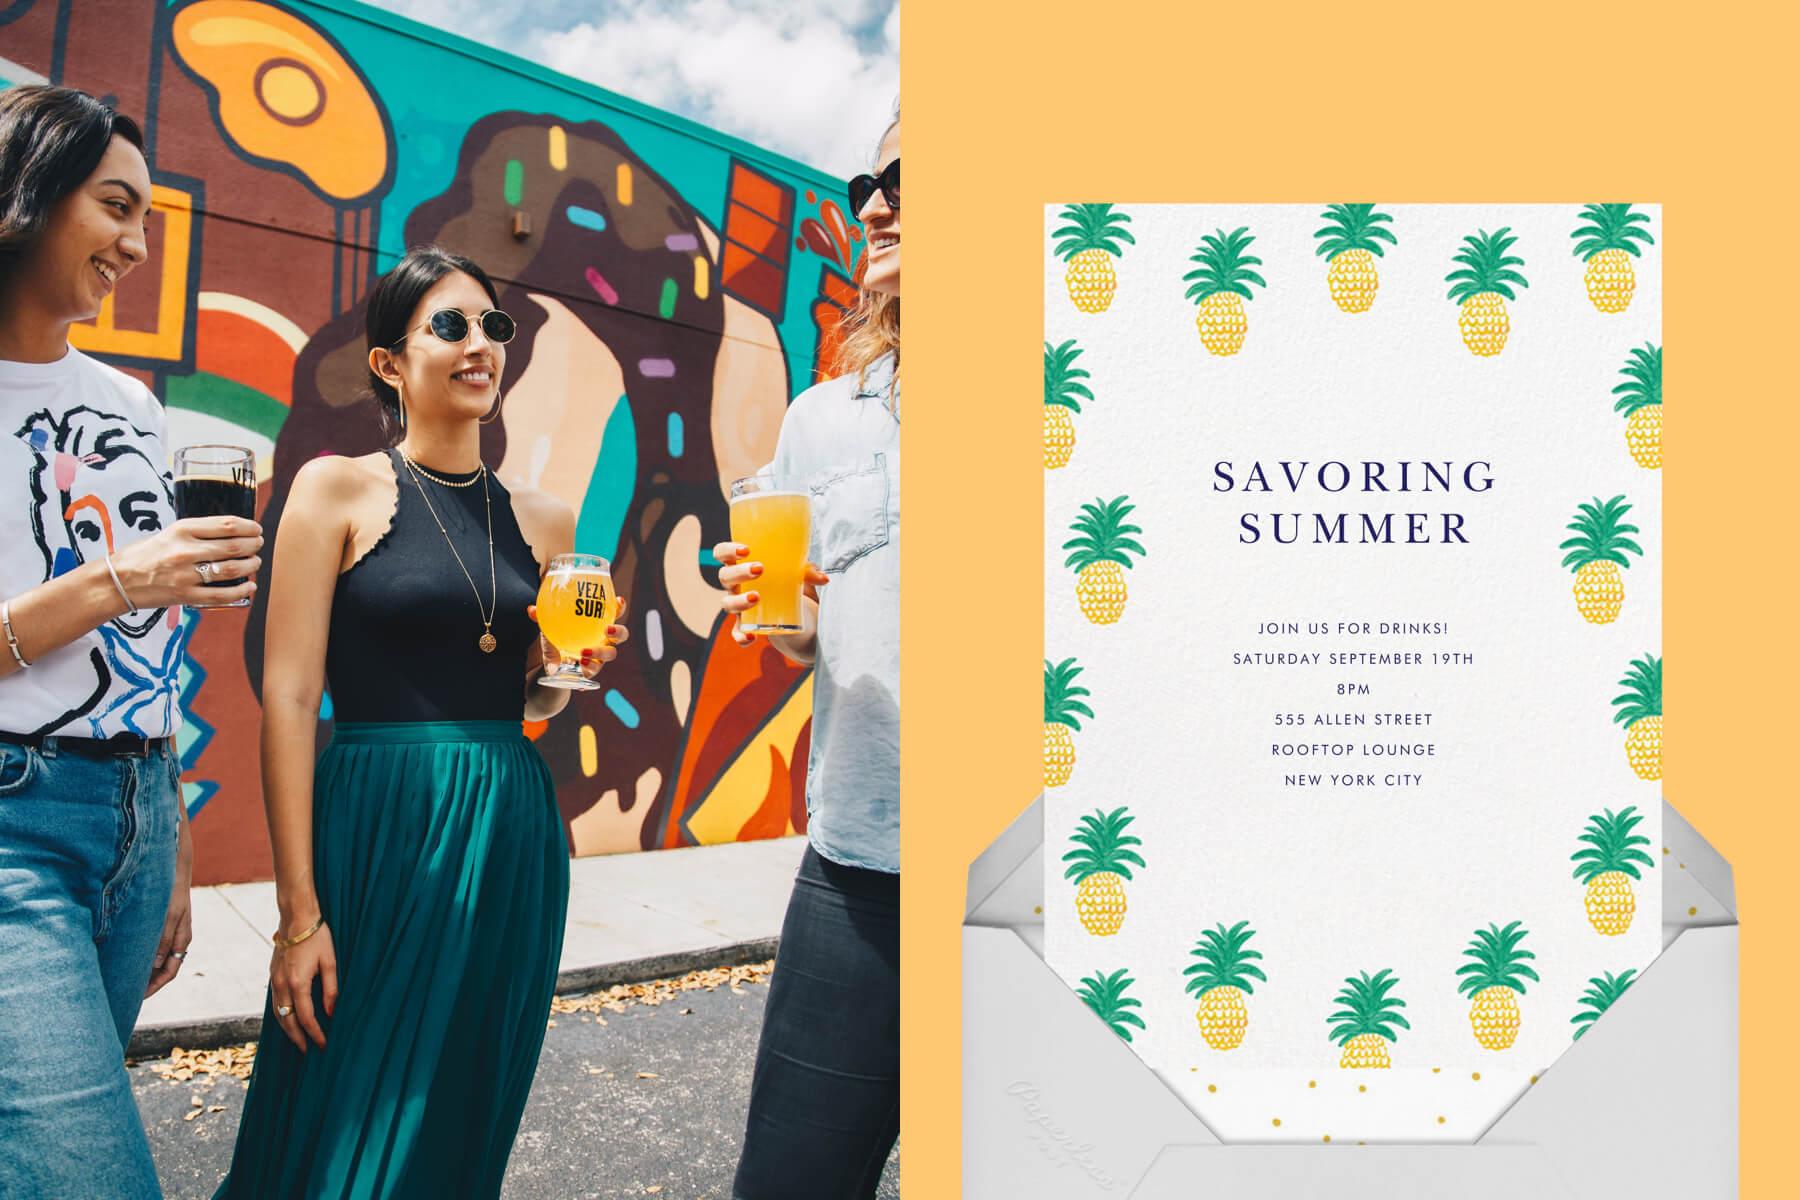 """Left: Three young friends drinking beer outdoors in front of a graffiti wall.   Right: """"Pineapple Party"""" invitation by Linda and Harriet for Paperless Post featuring illustrations of pineapples on a yellow background."""